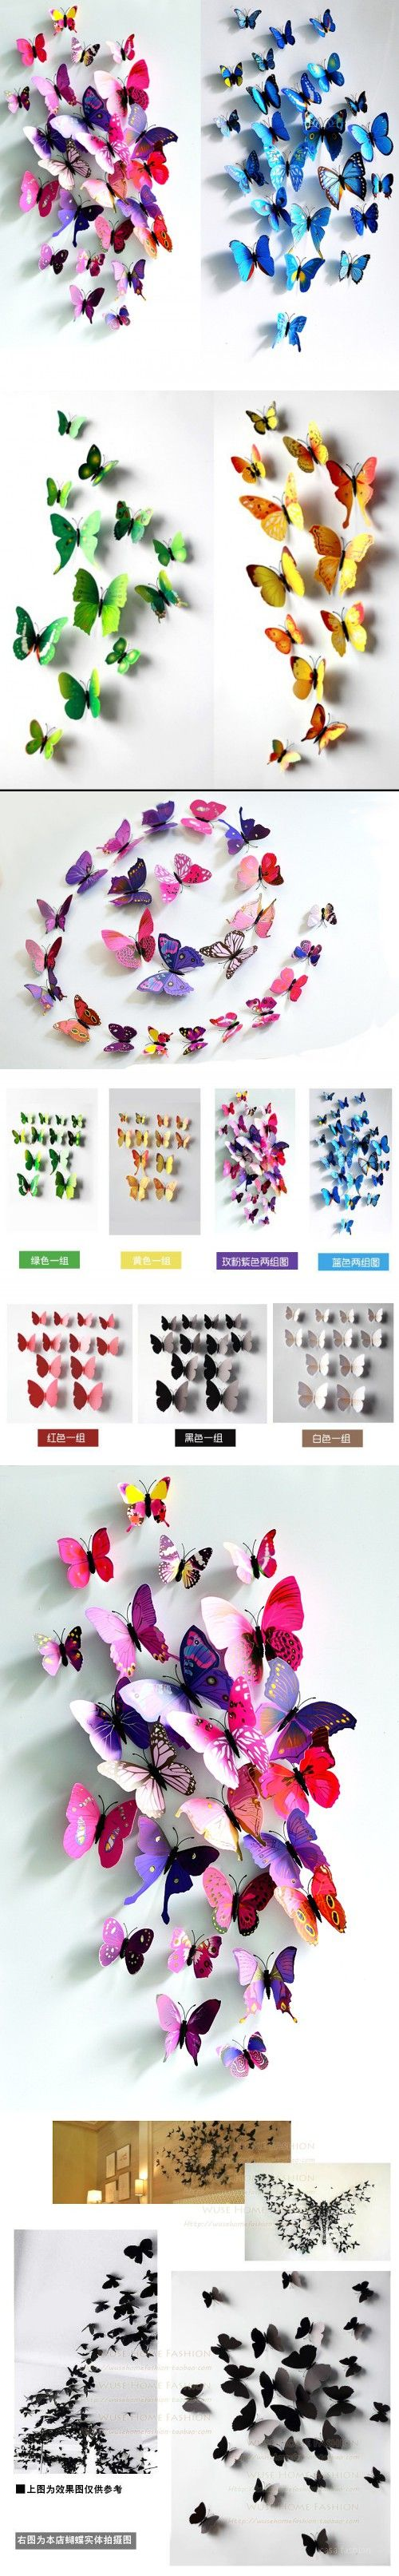 best 25 diy wall stickers ideas on pinterest dollar tree decor 3d three dimensional wall stickers butterfly wall stickers size 12 suit wedding curtain window display